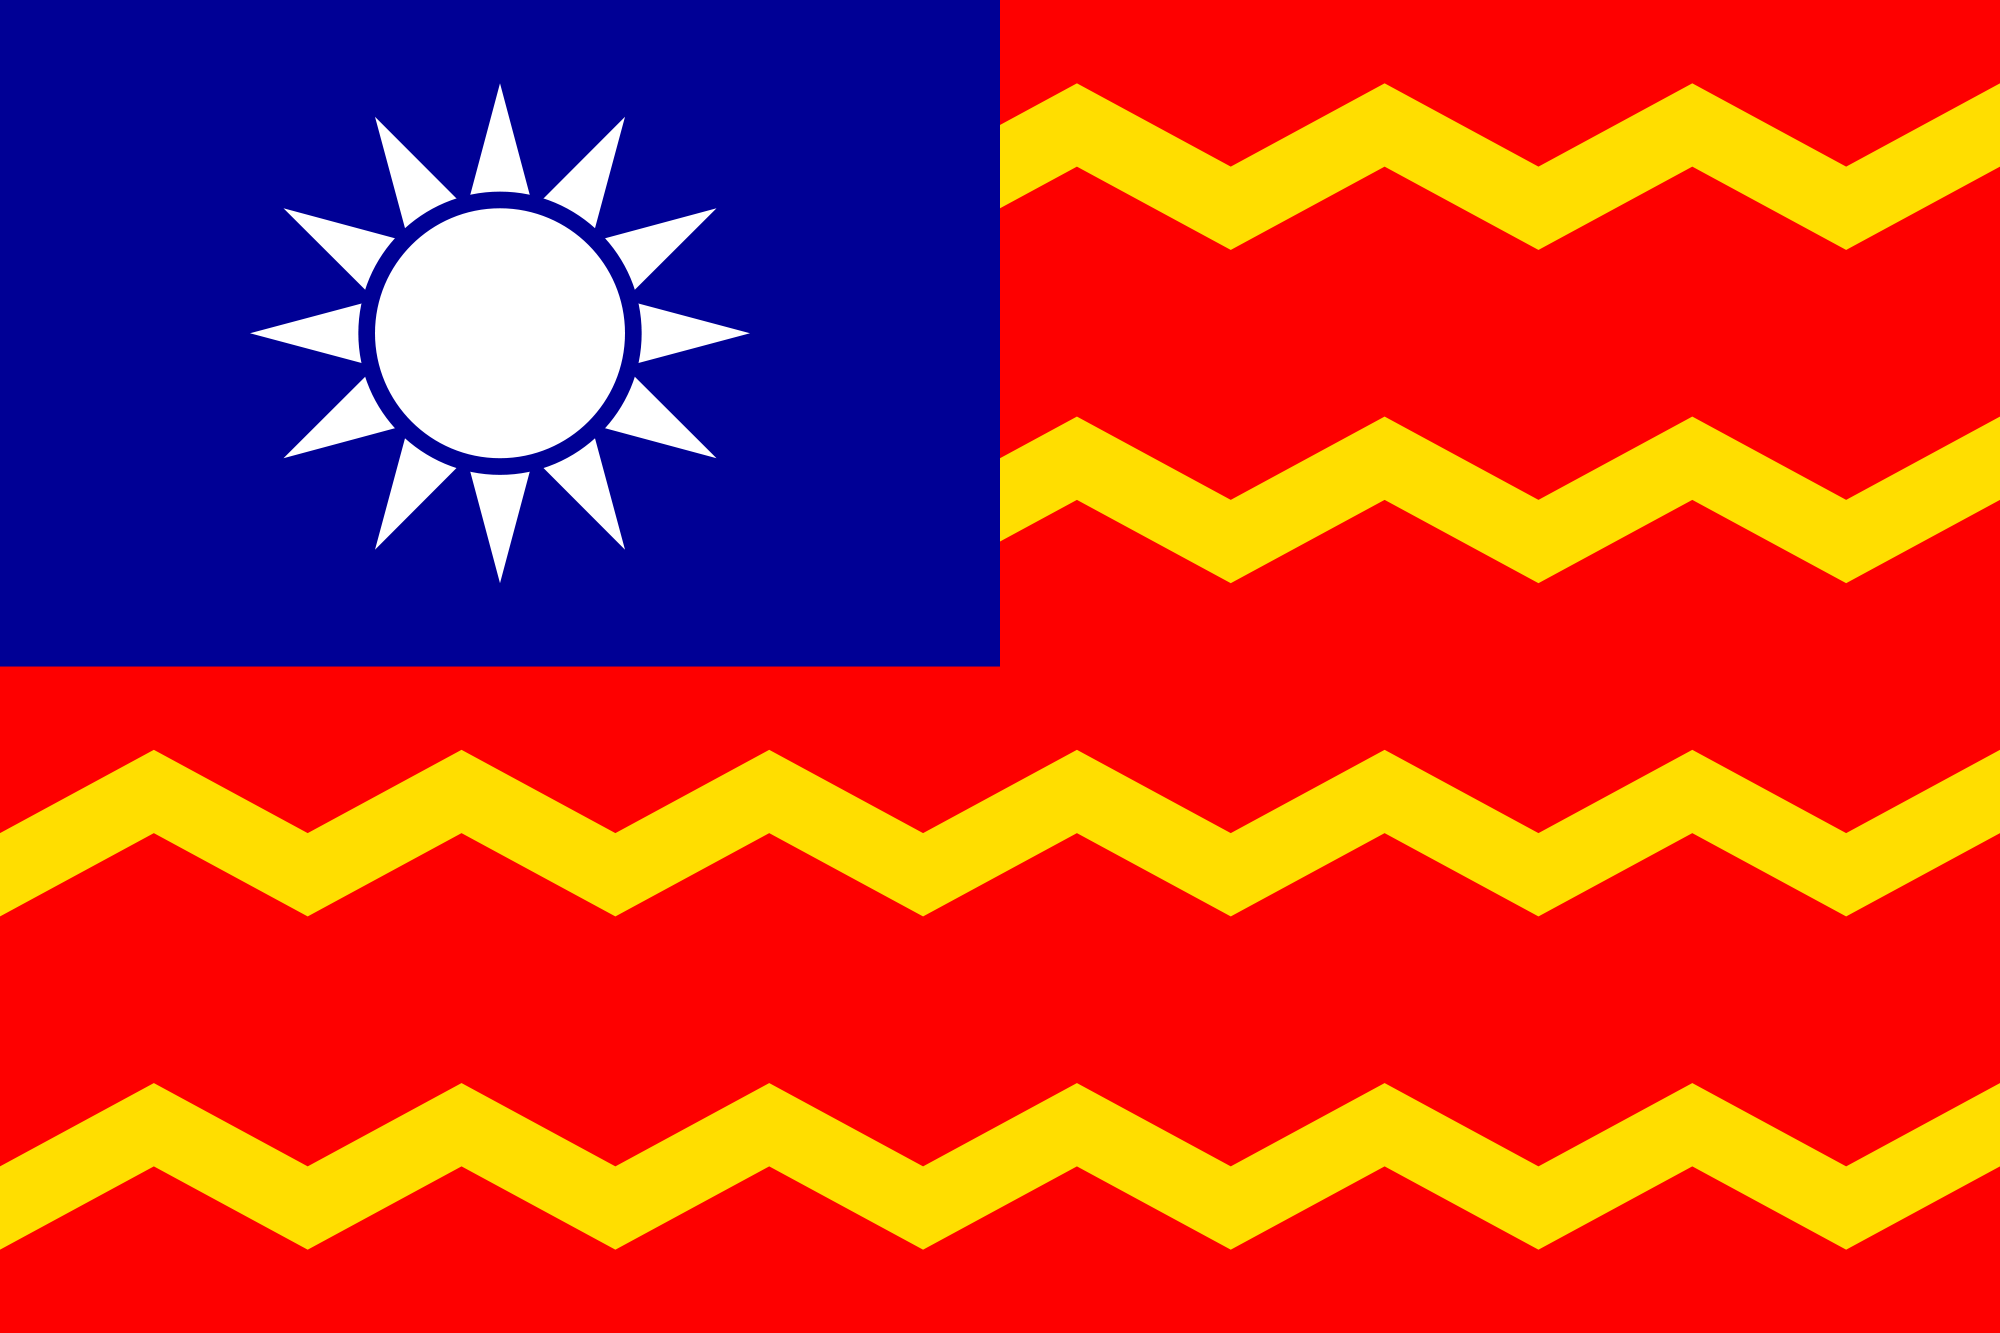 Taiwan (Civil ensign)